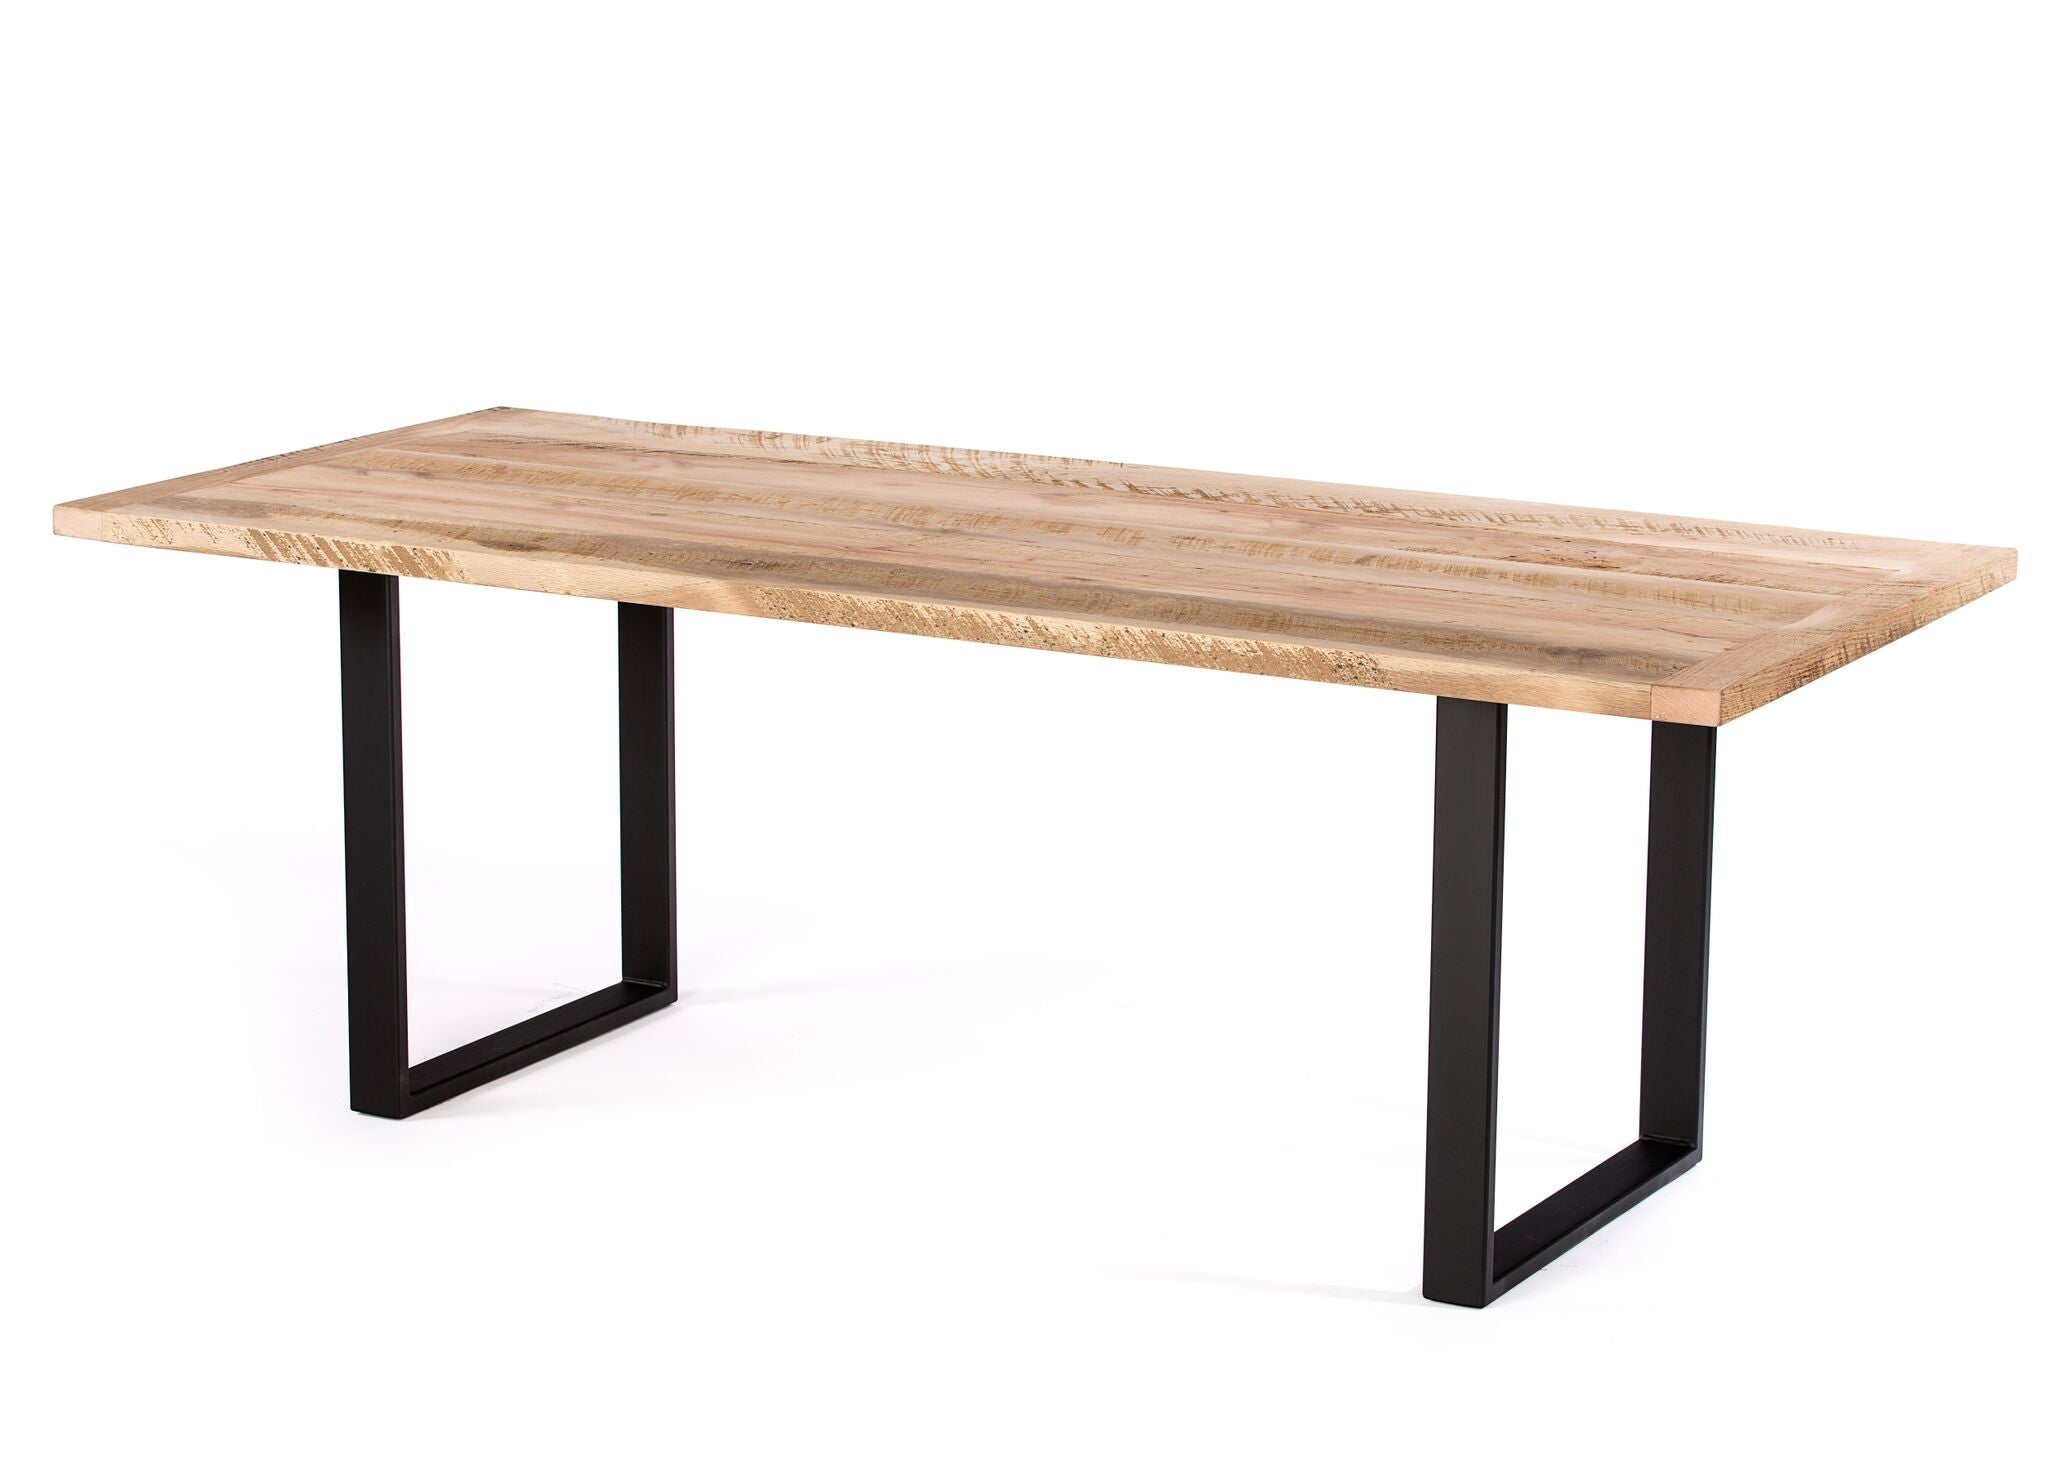 "Wood Tables | Maddox Table | Natural Reclaimed Oak | Black | CUSTOM SIZE L 108 W 30 H 30 | 2"" kingston-krafts-zinc-tables."